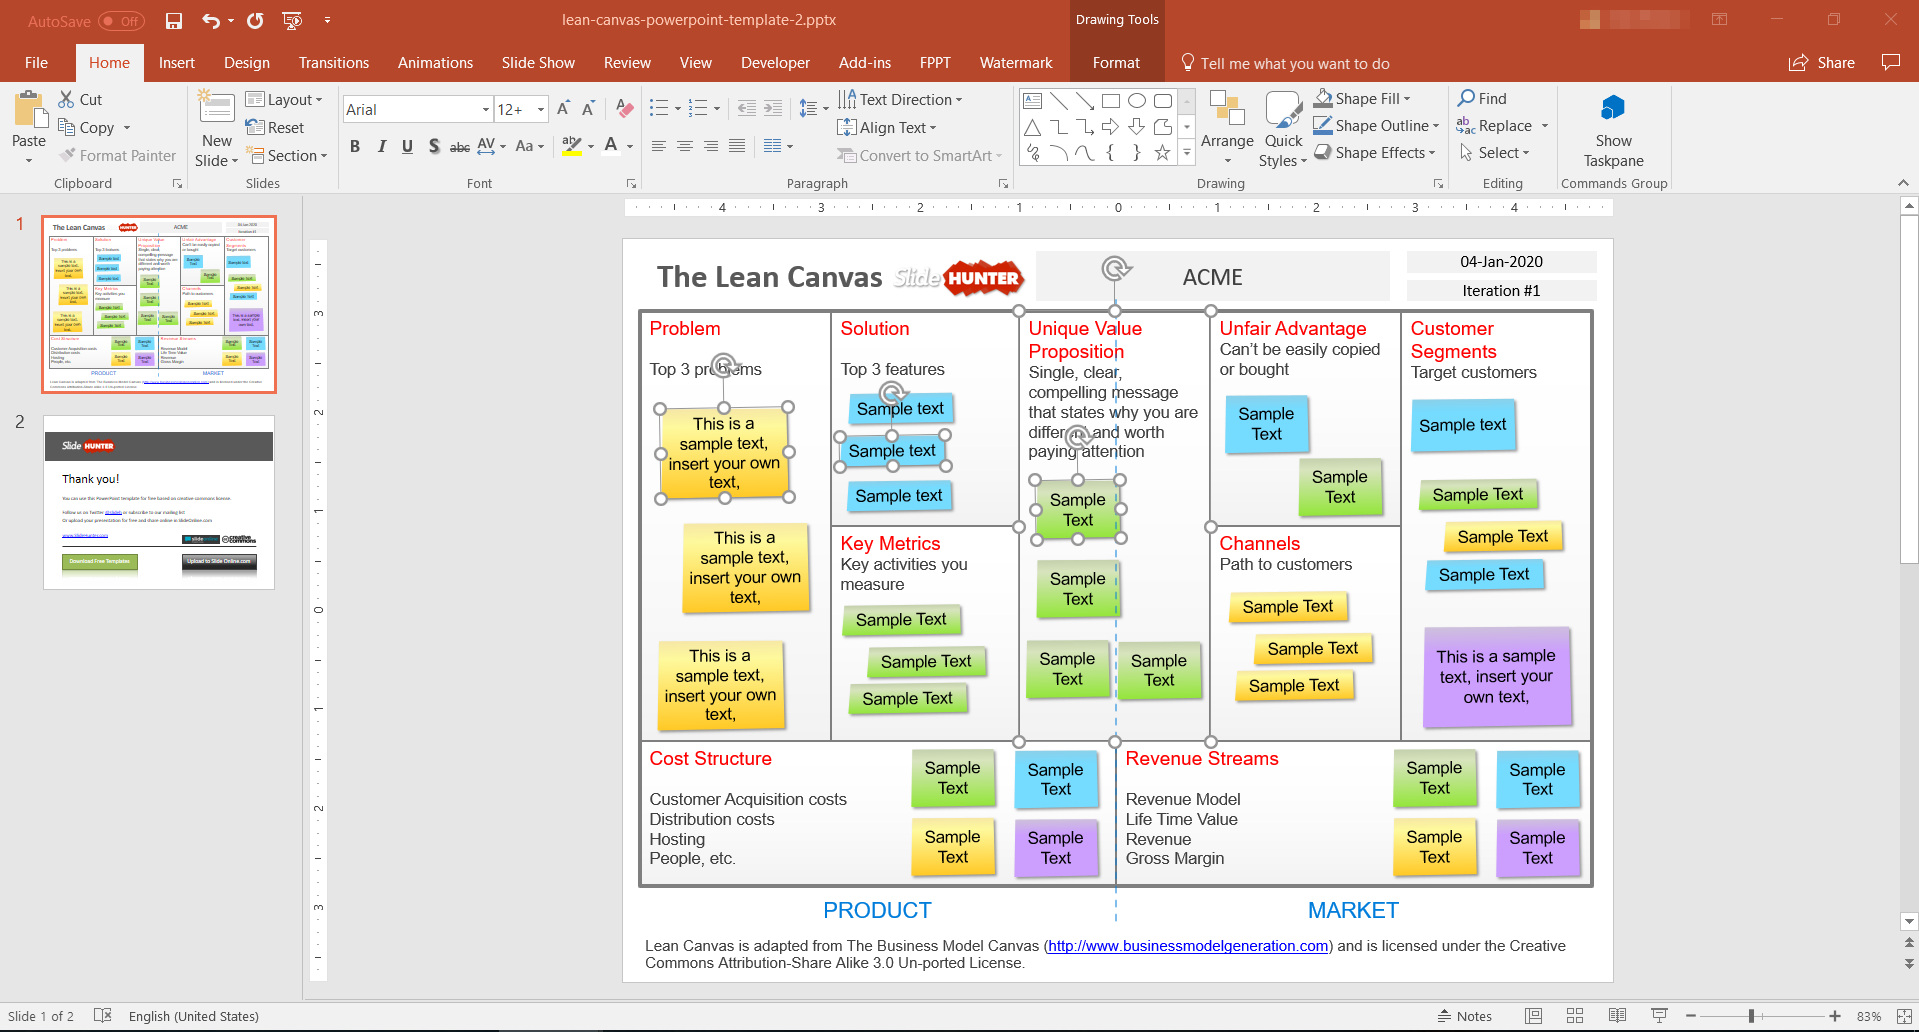 Free editable lean canvas template for PowerPoint - 4x3 format